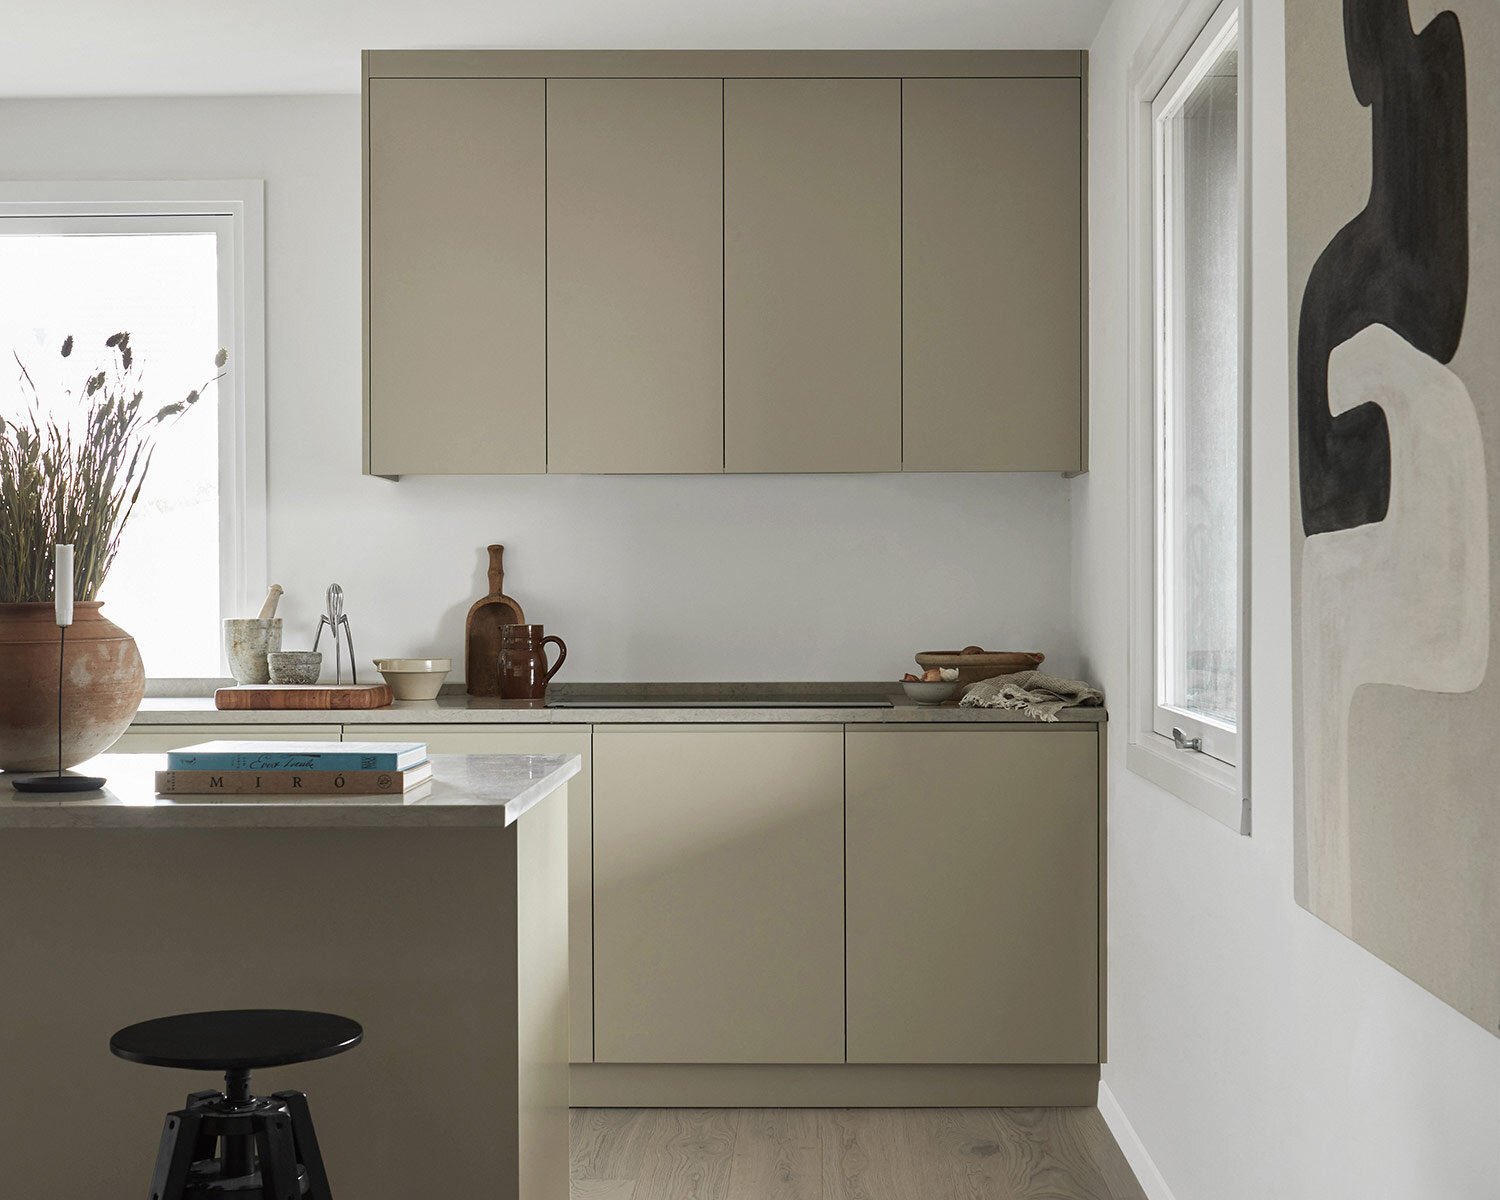 2. Measuring - Now is the time to measure. With the help of our simple measuring guide, you will have to fill in some measurements in your kitchen. Then it is time for us to start drawing and planning the kitchen based on your wishes and needs.